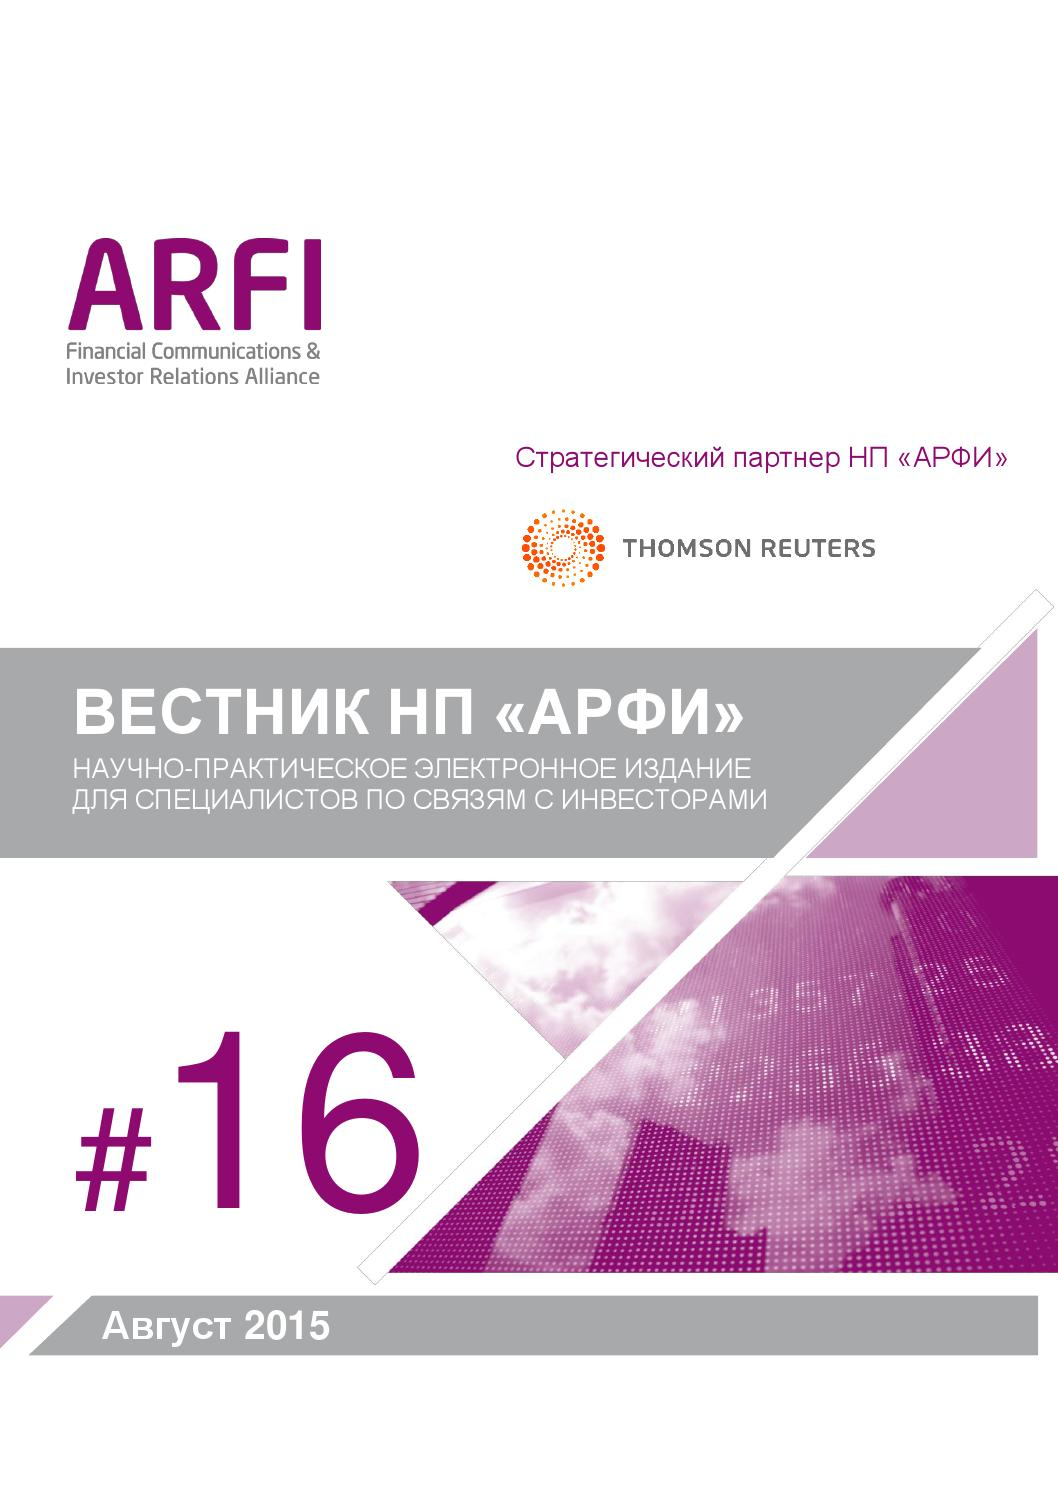 7ca8a71d0668 ARFI Herald  16 – The Russian Investor Relations Society Herald – August  2015 edition by ARFI Content - issuu